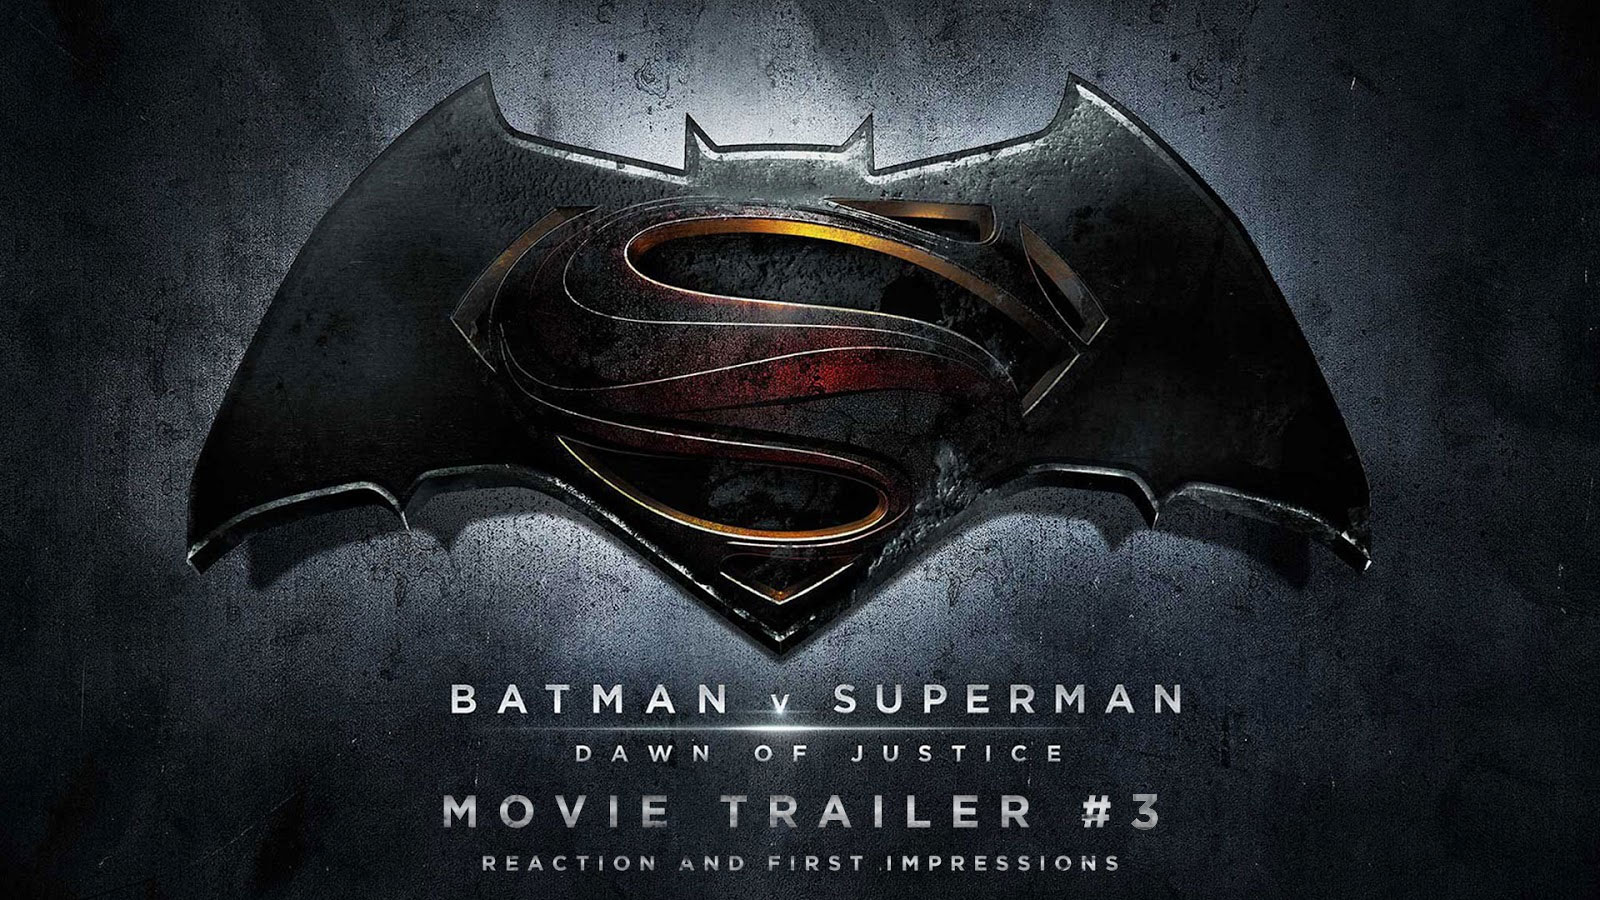 reaction to trailer for Batman v Superman: Dawn of Justice